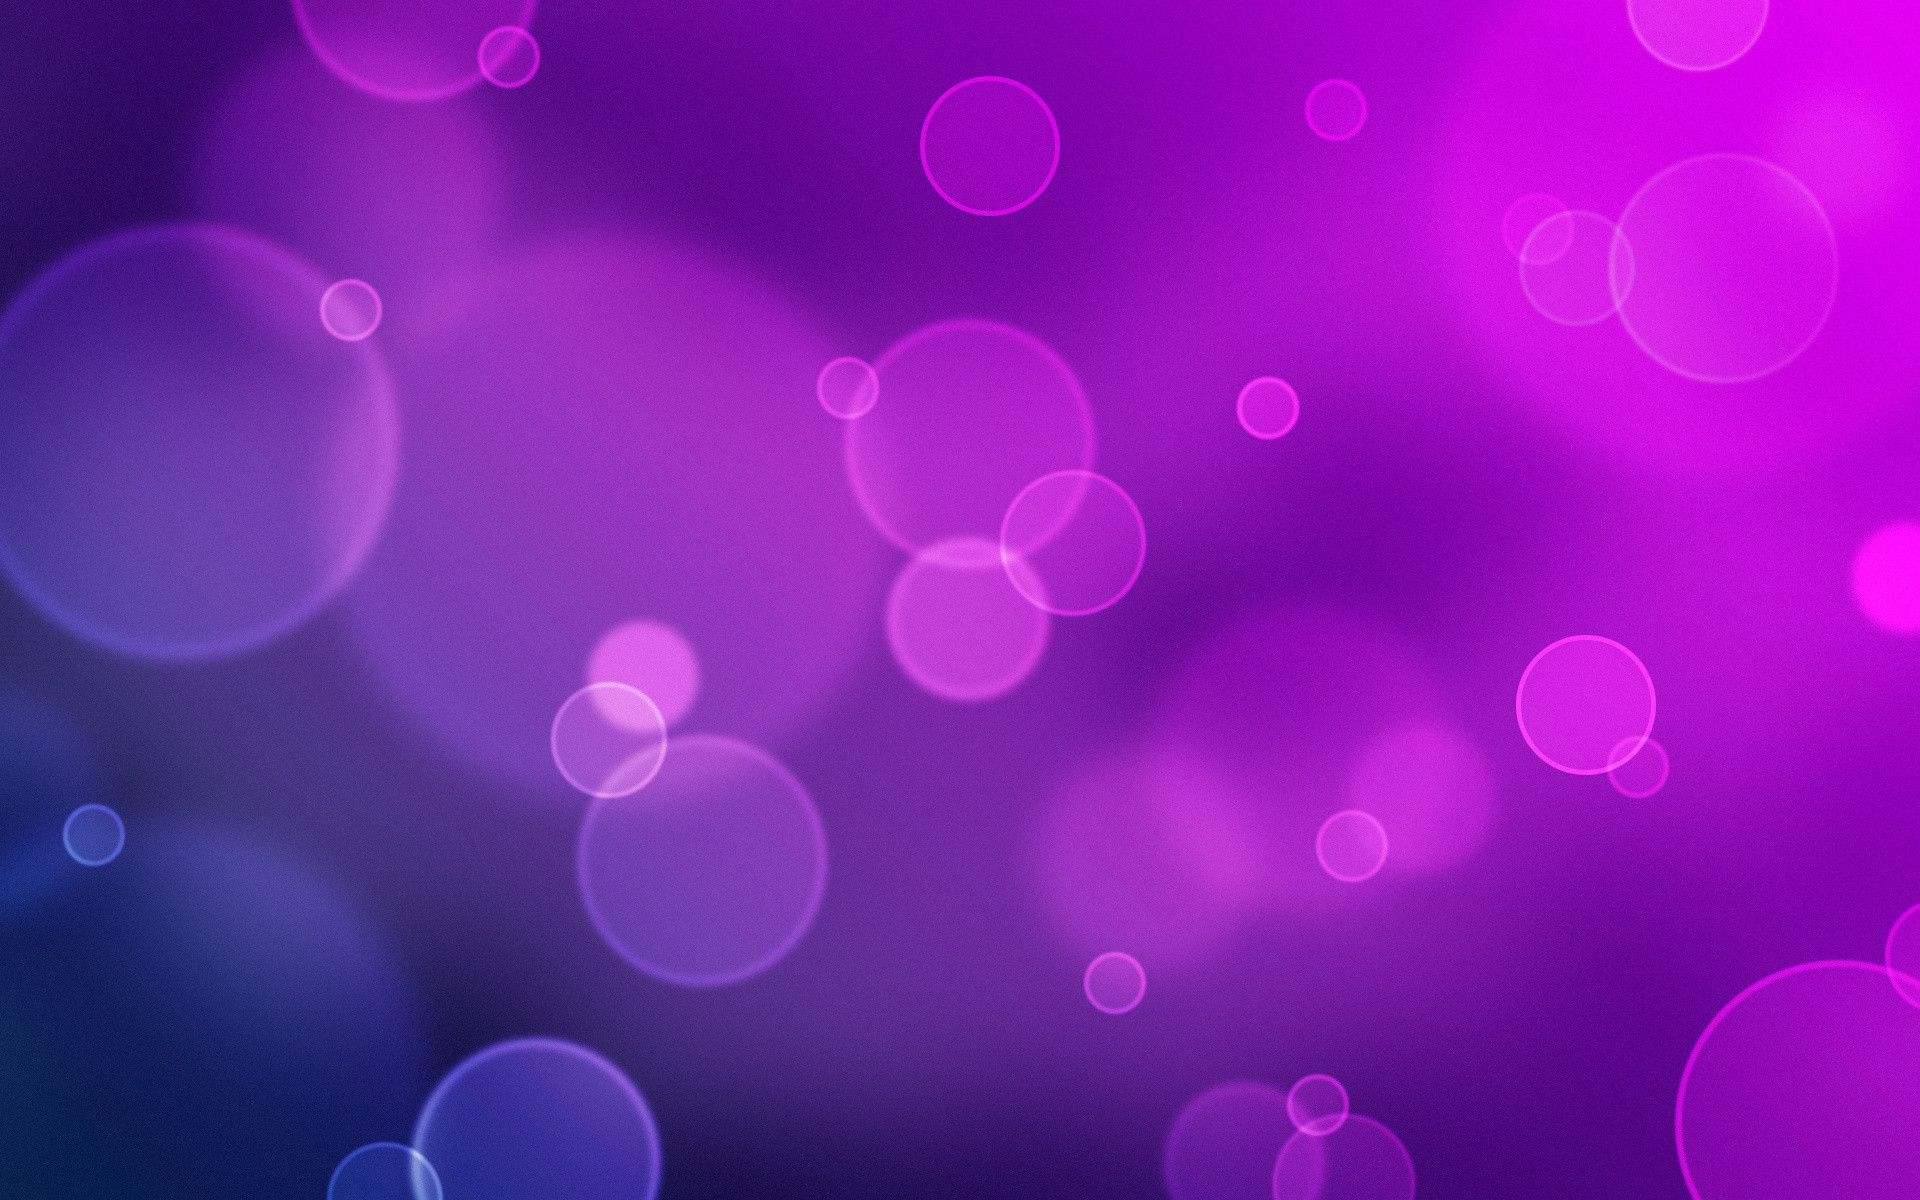 Purple Wallpapers  60  pictures  1920x1200 Download Purple  006 HD Wallpaper  4889  Full Size   Wallpaper HD